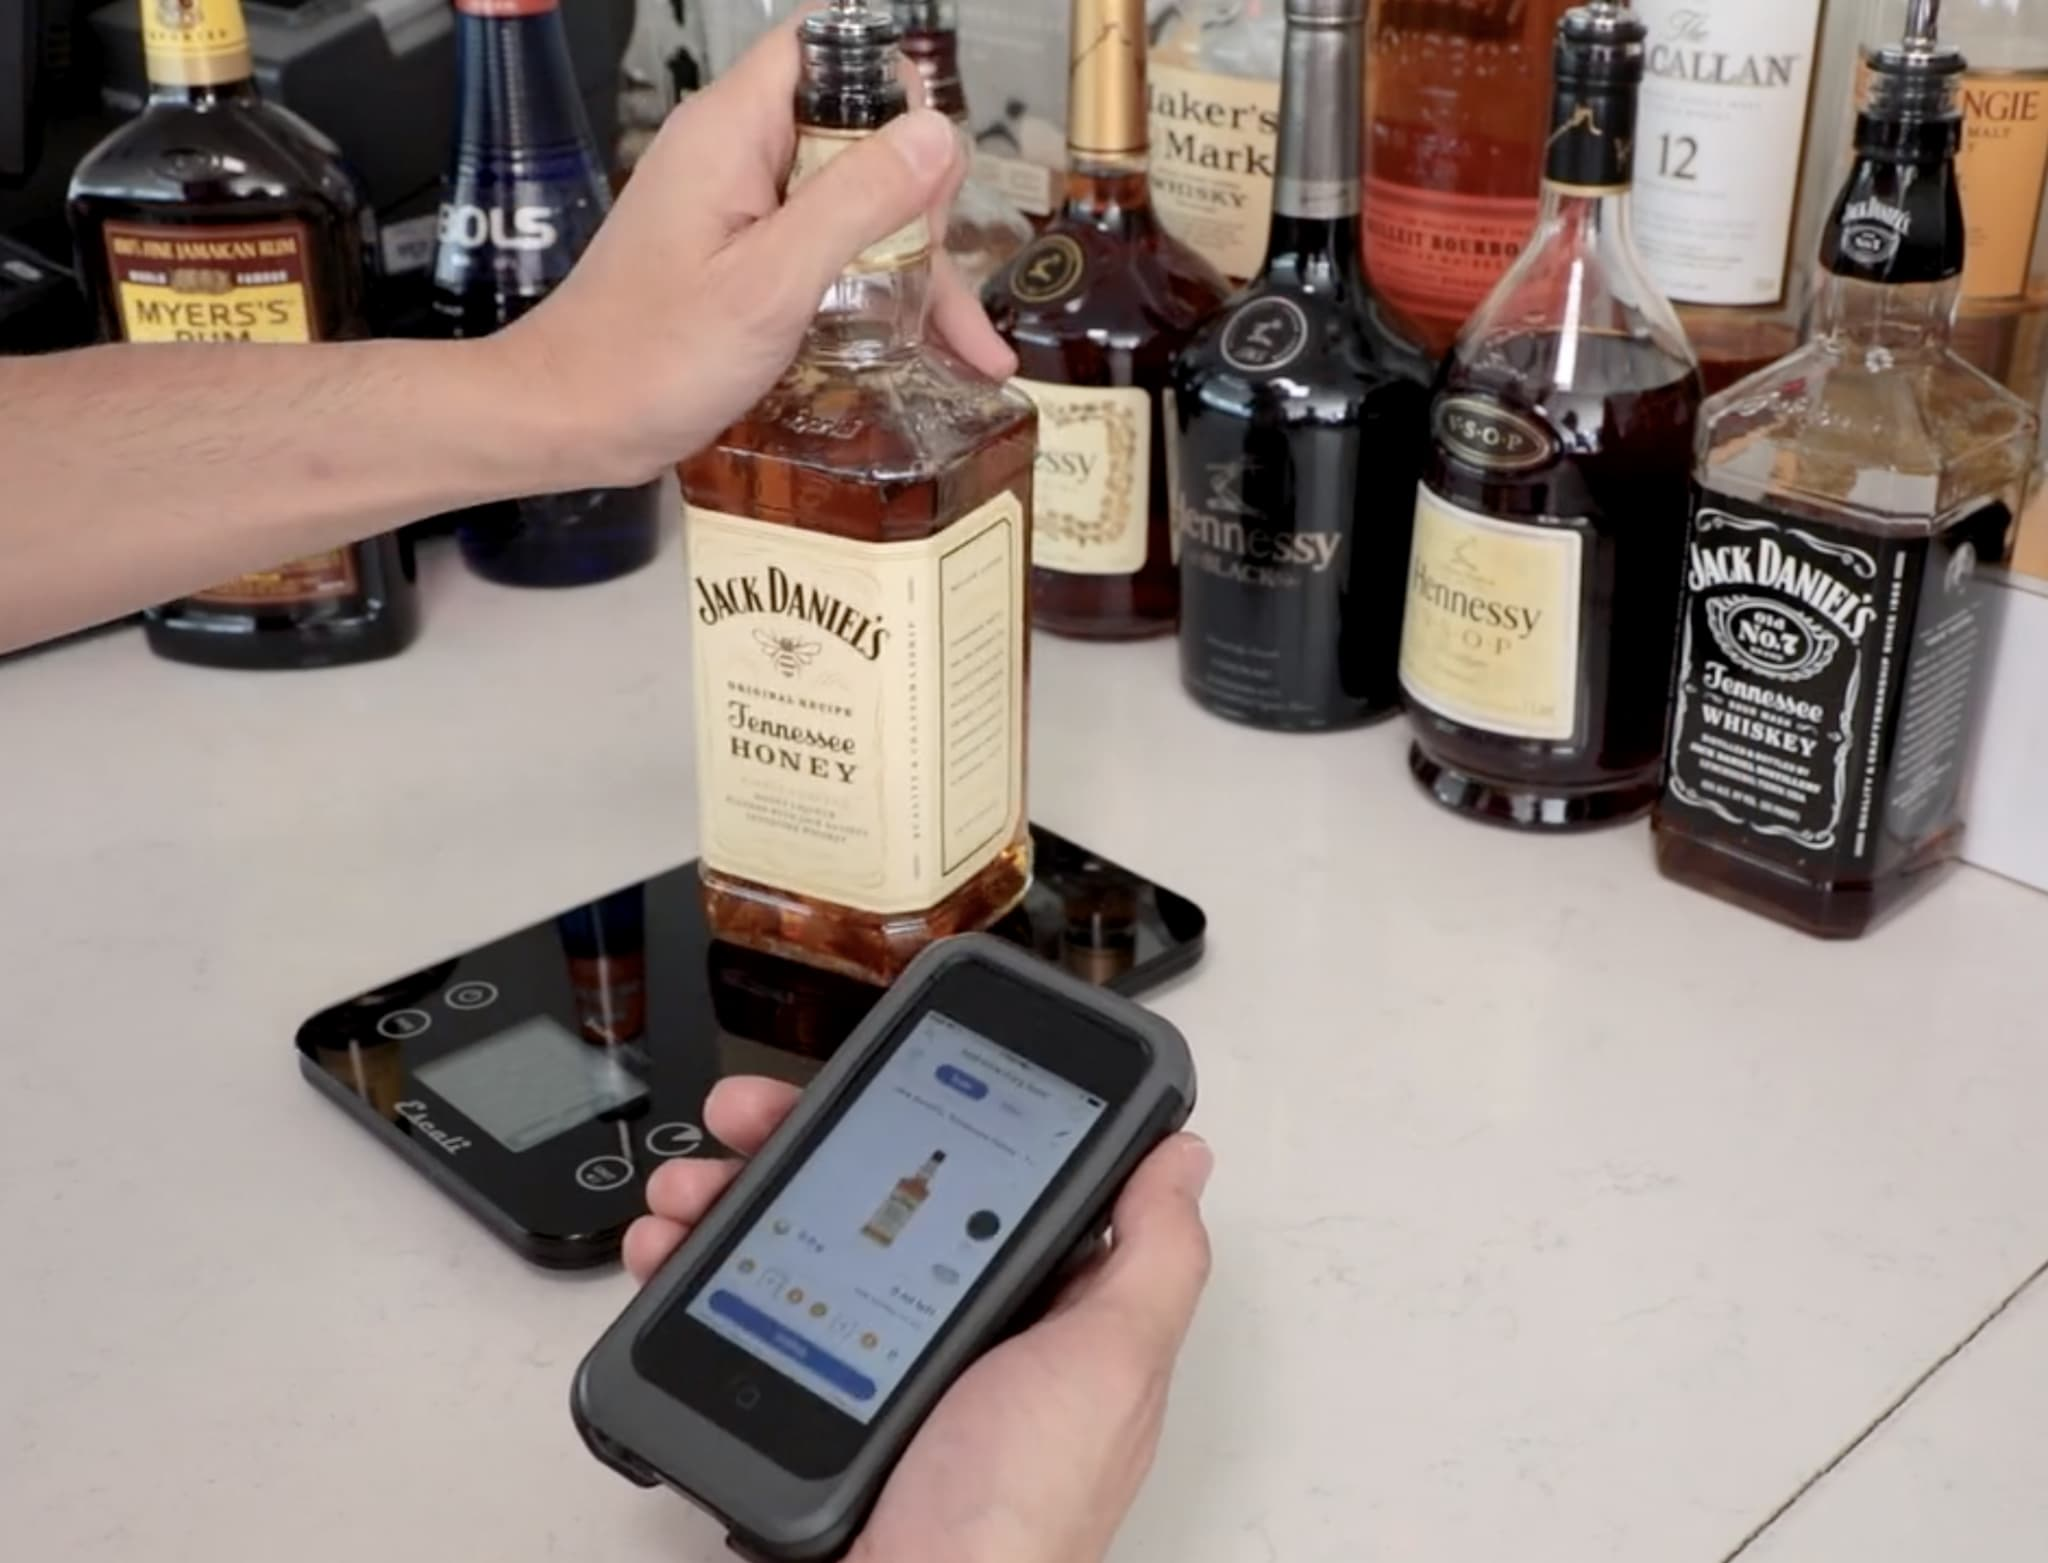 iphone, liquor, bar inventory app, wisk, alcohol